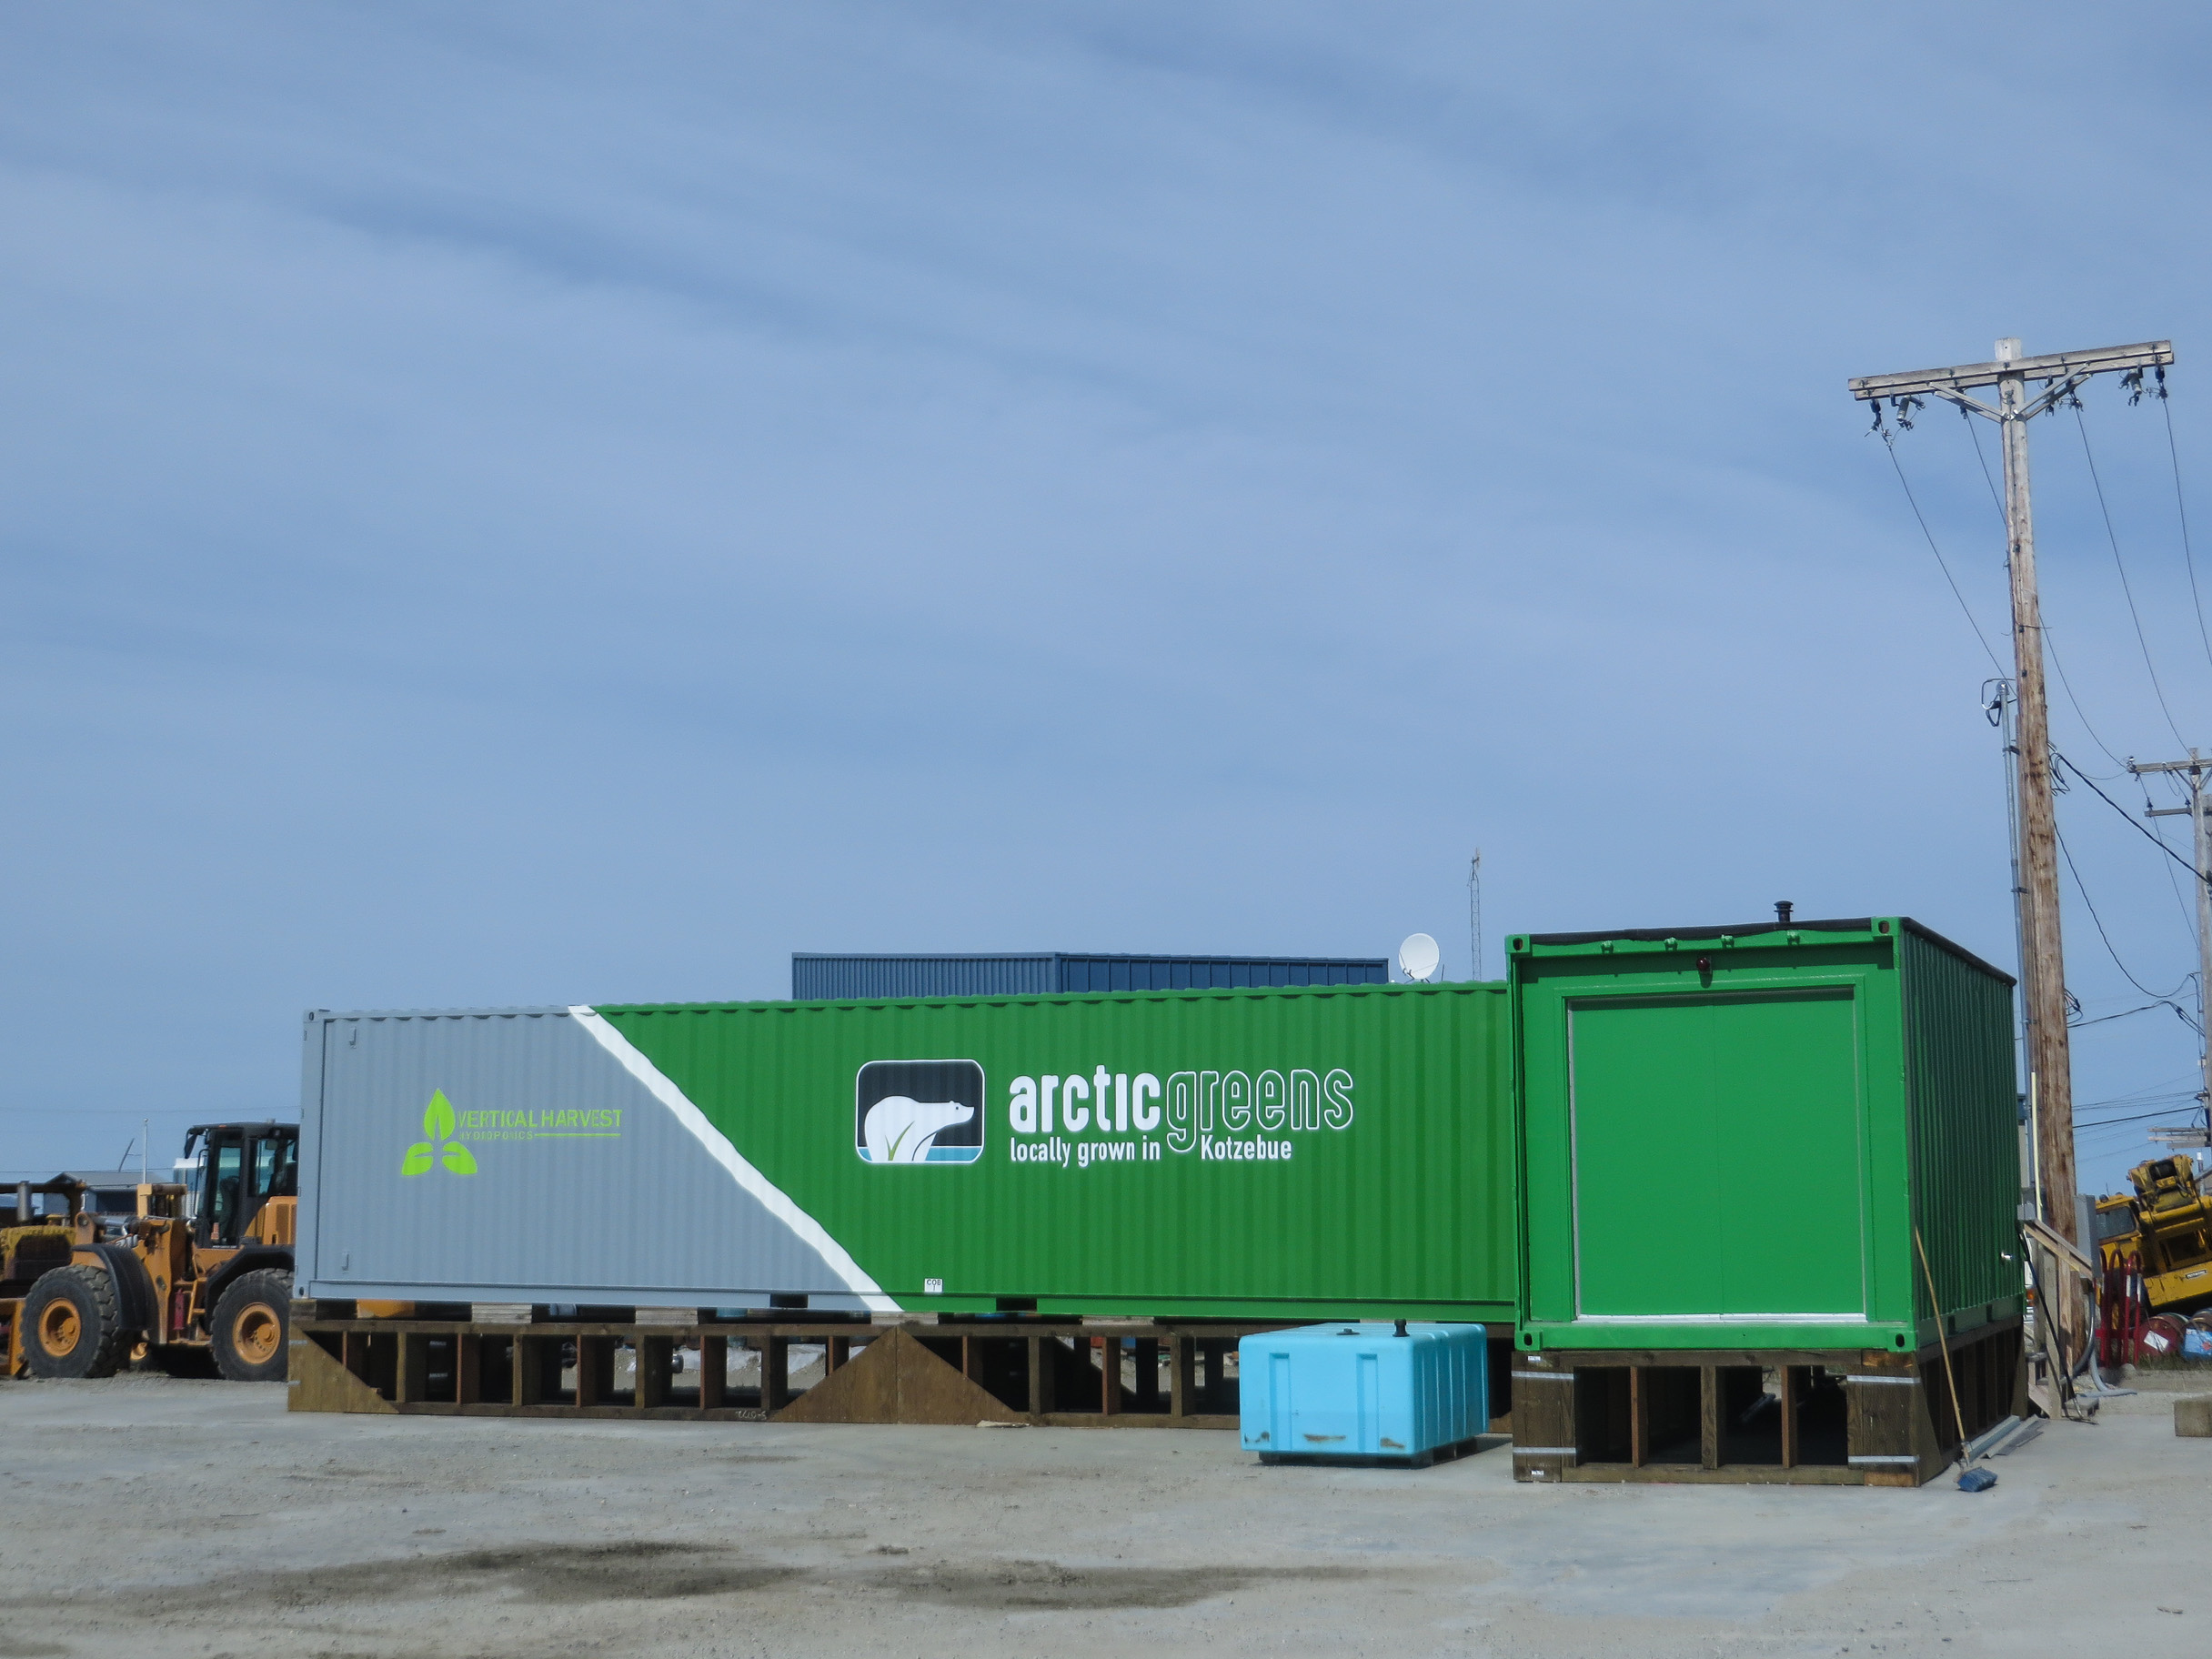 If the pilot phase goes well, Arctic Greens plans to purchase three more hydroponic connexes for the Kotzebue operation. (Photo by Laura Kraegel, KNOM - Nome)